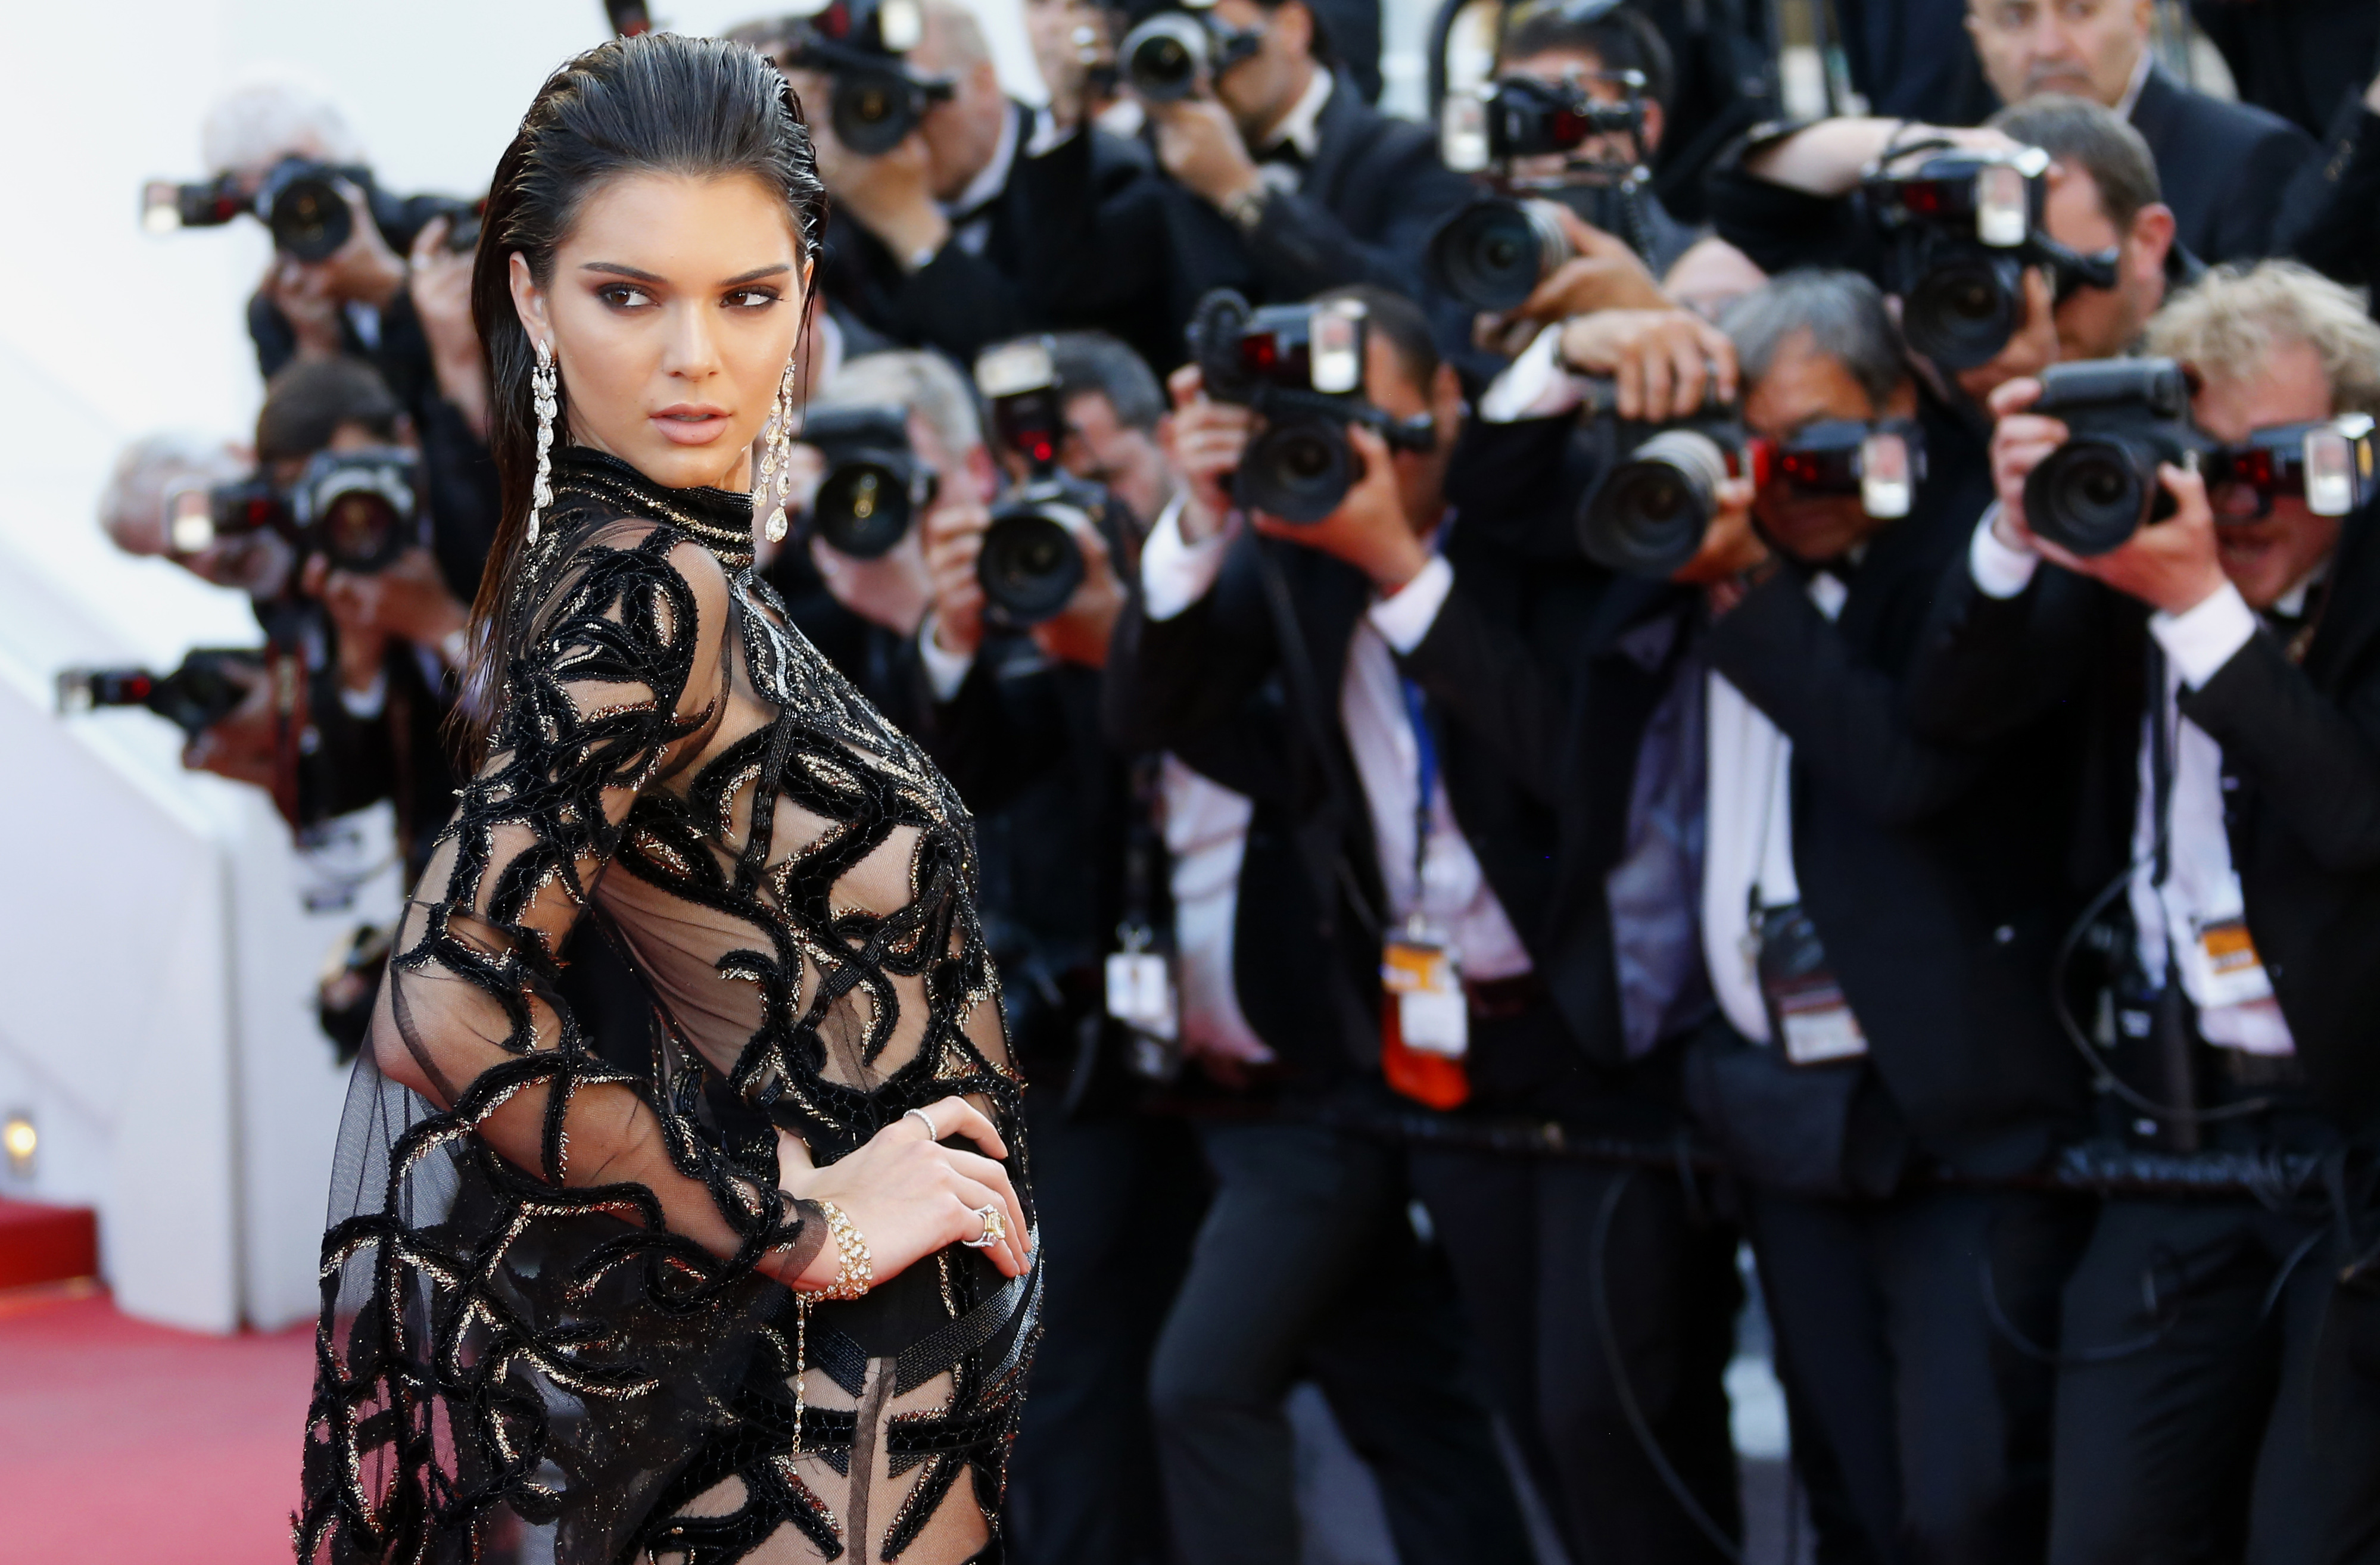 Model Kendall Jenner poses on the red carpet as she arrives for the screening of the film